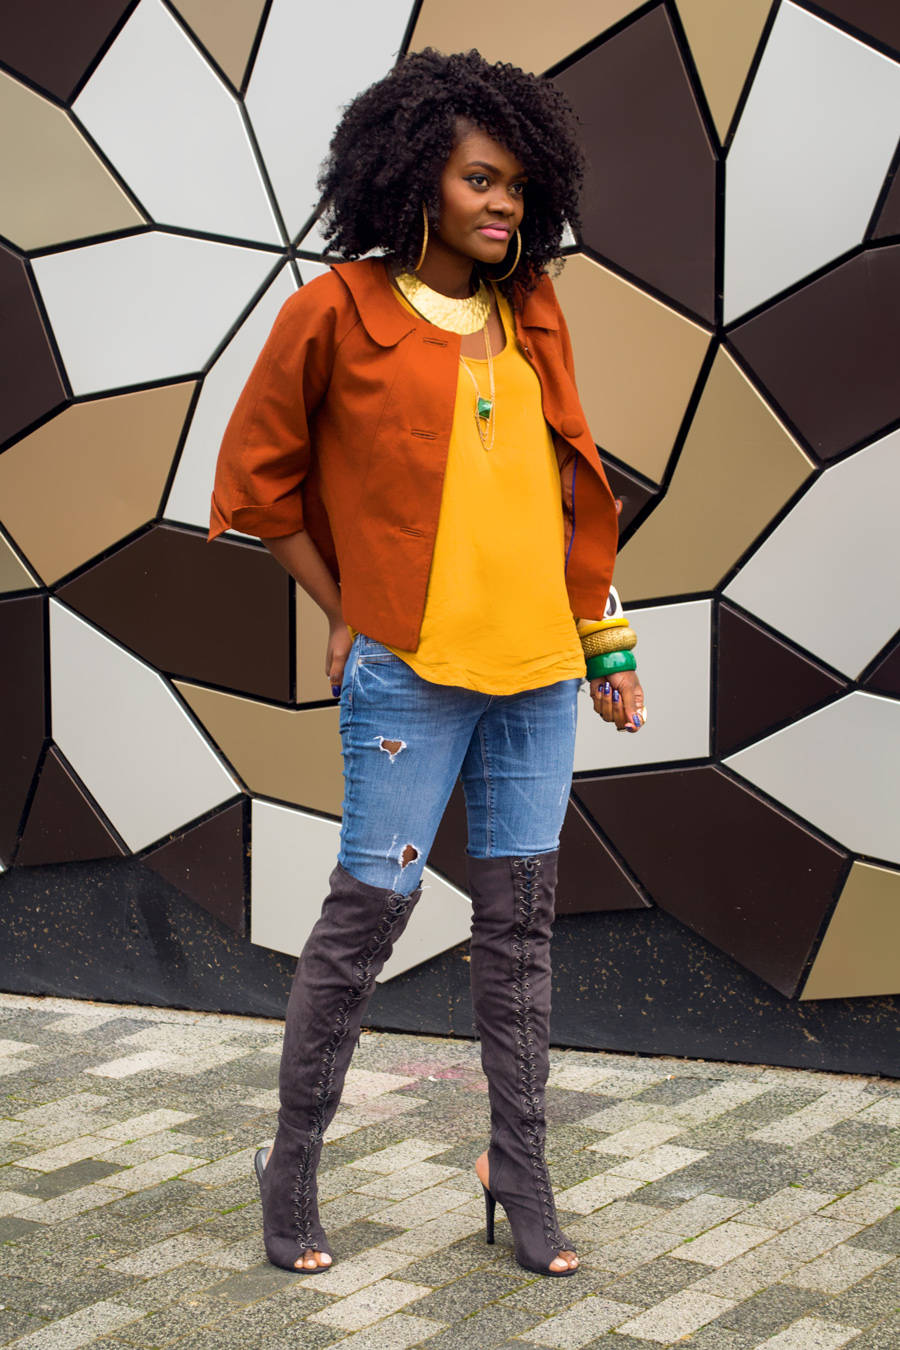 Styling high boots and warm colors